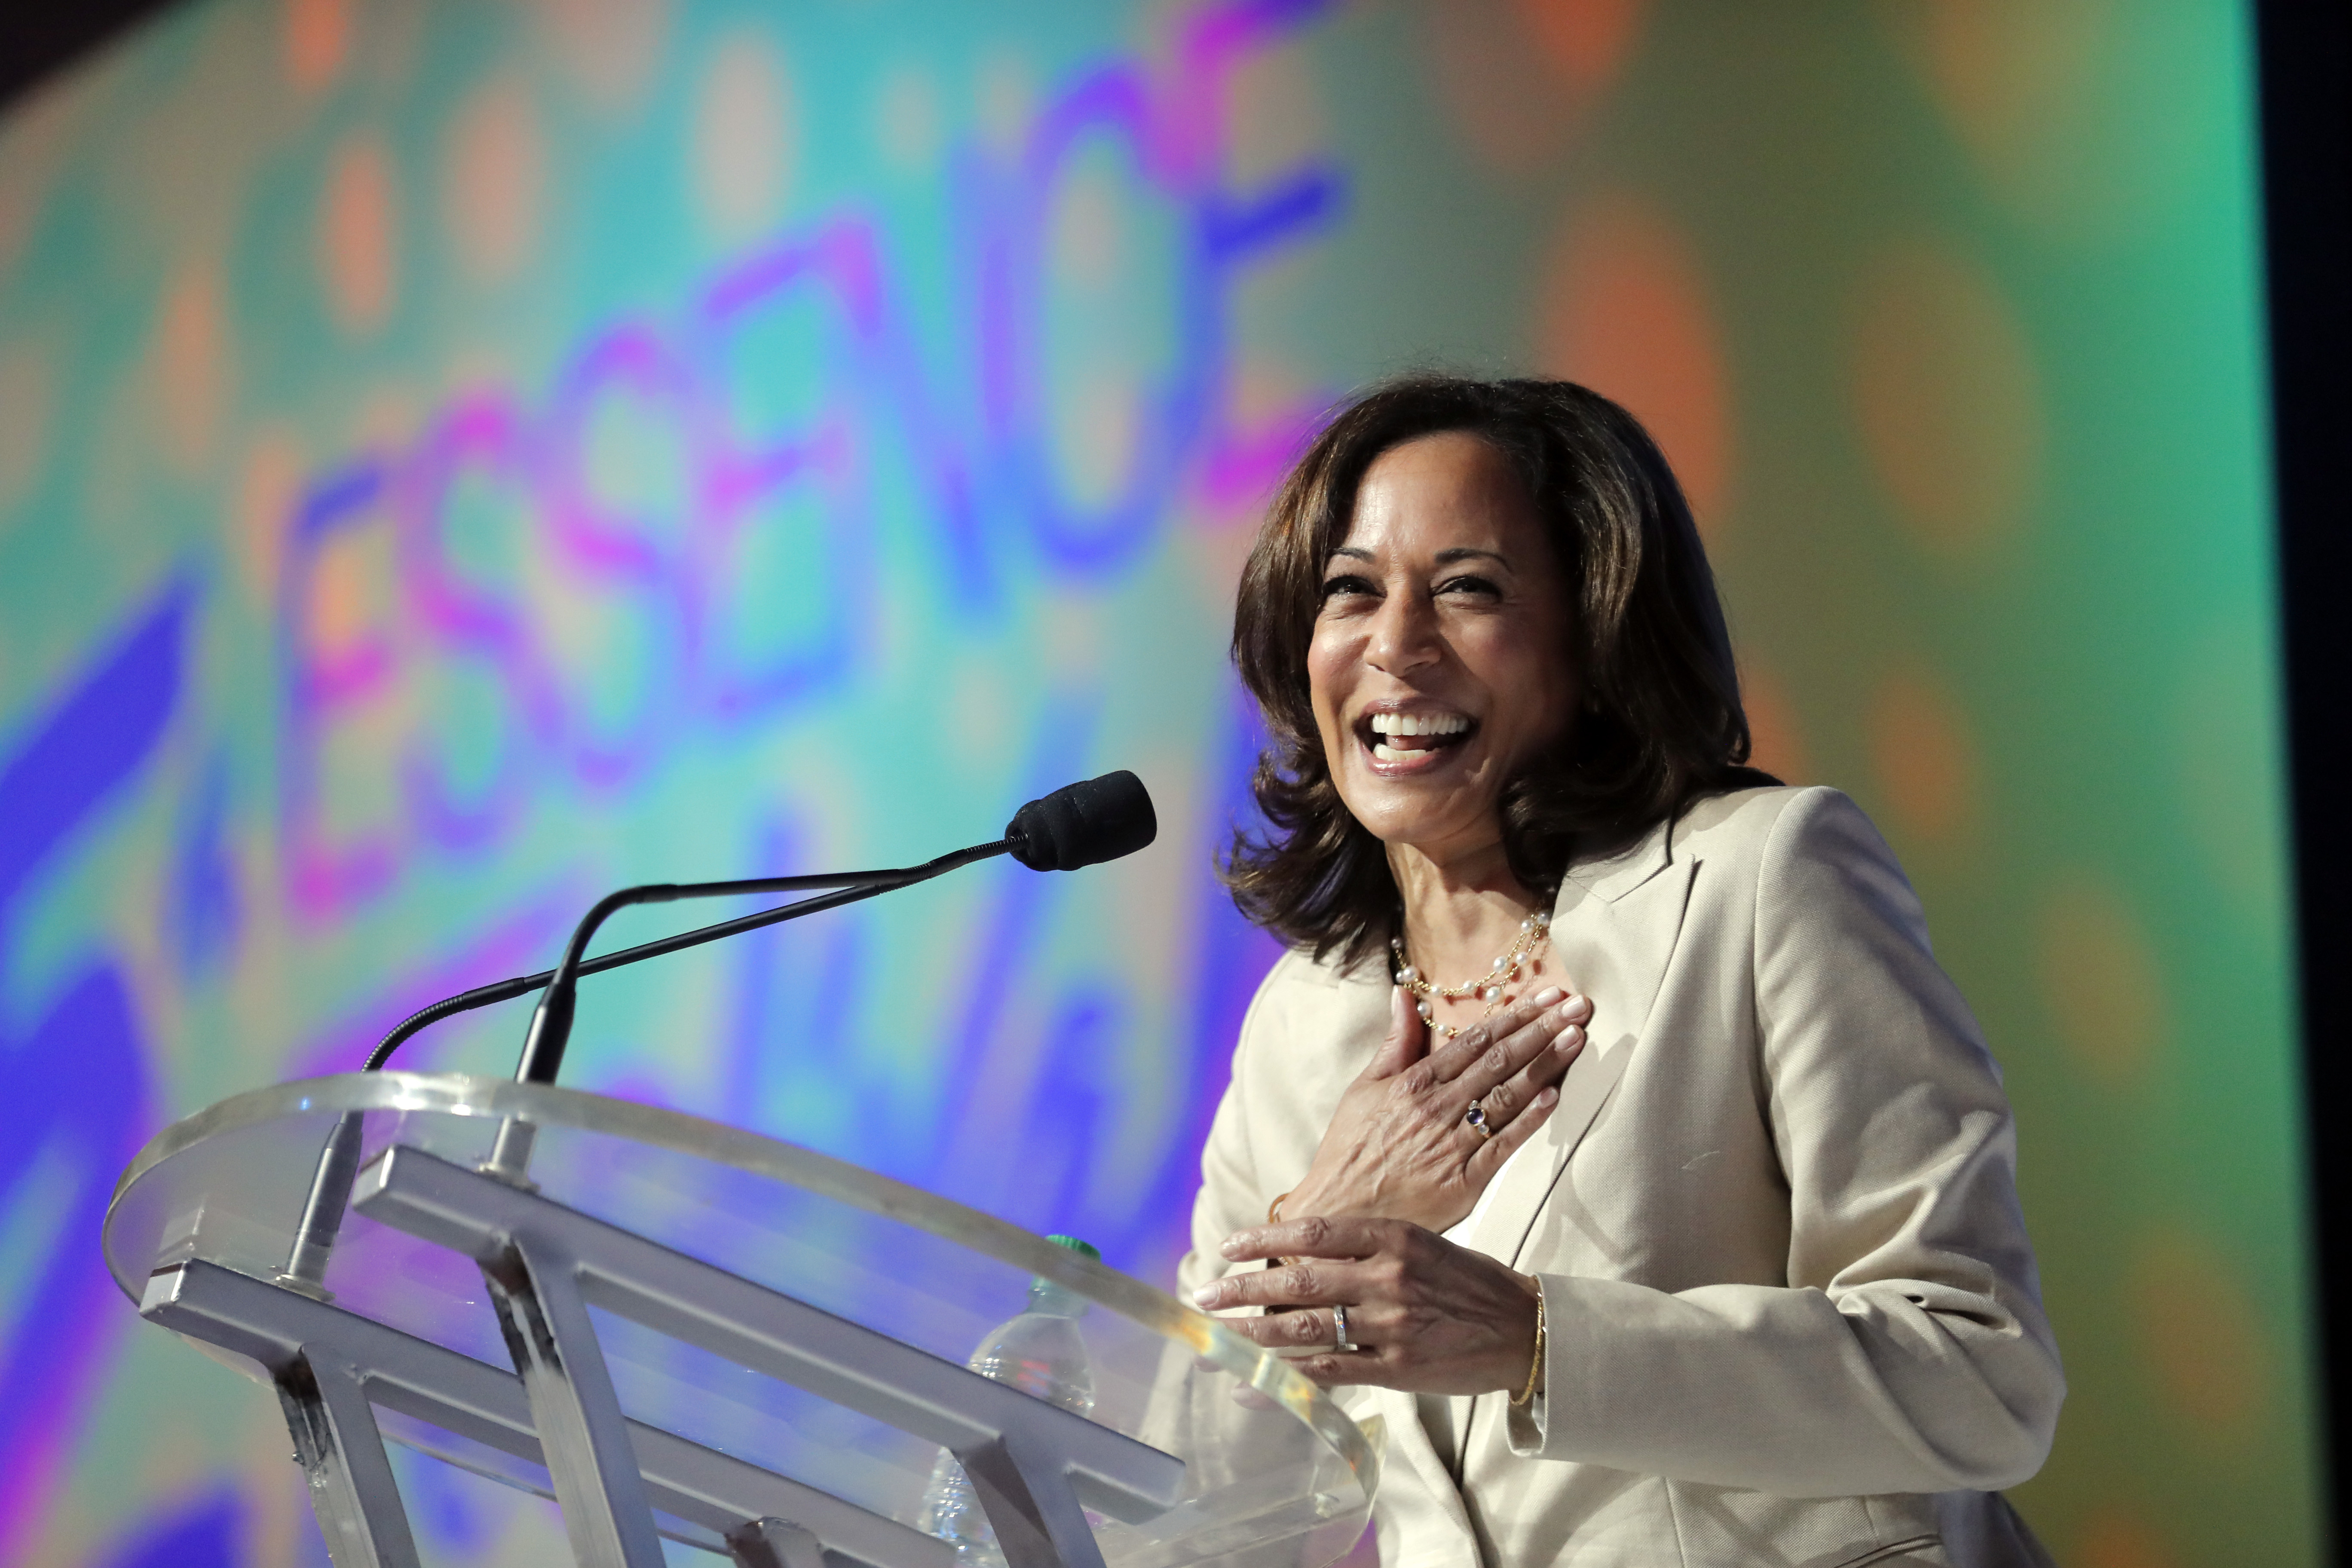 AP Interview: Kamala Harris on race and electability in 2020